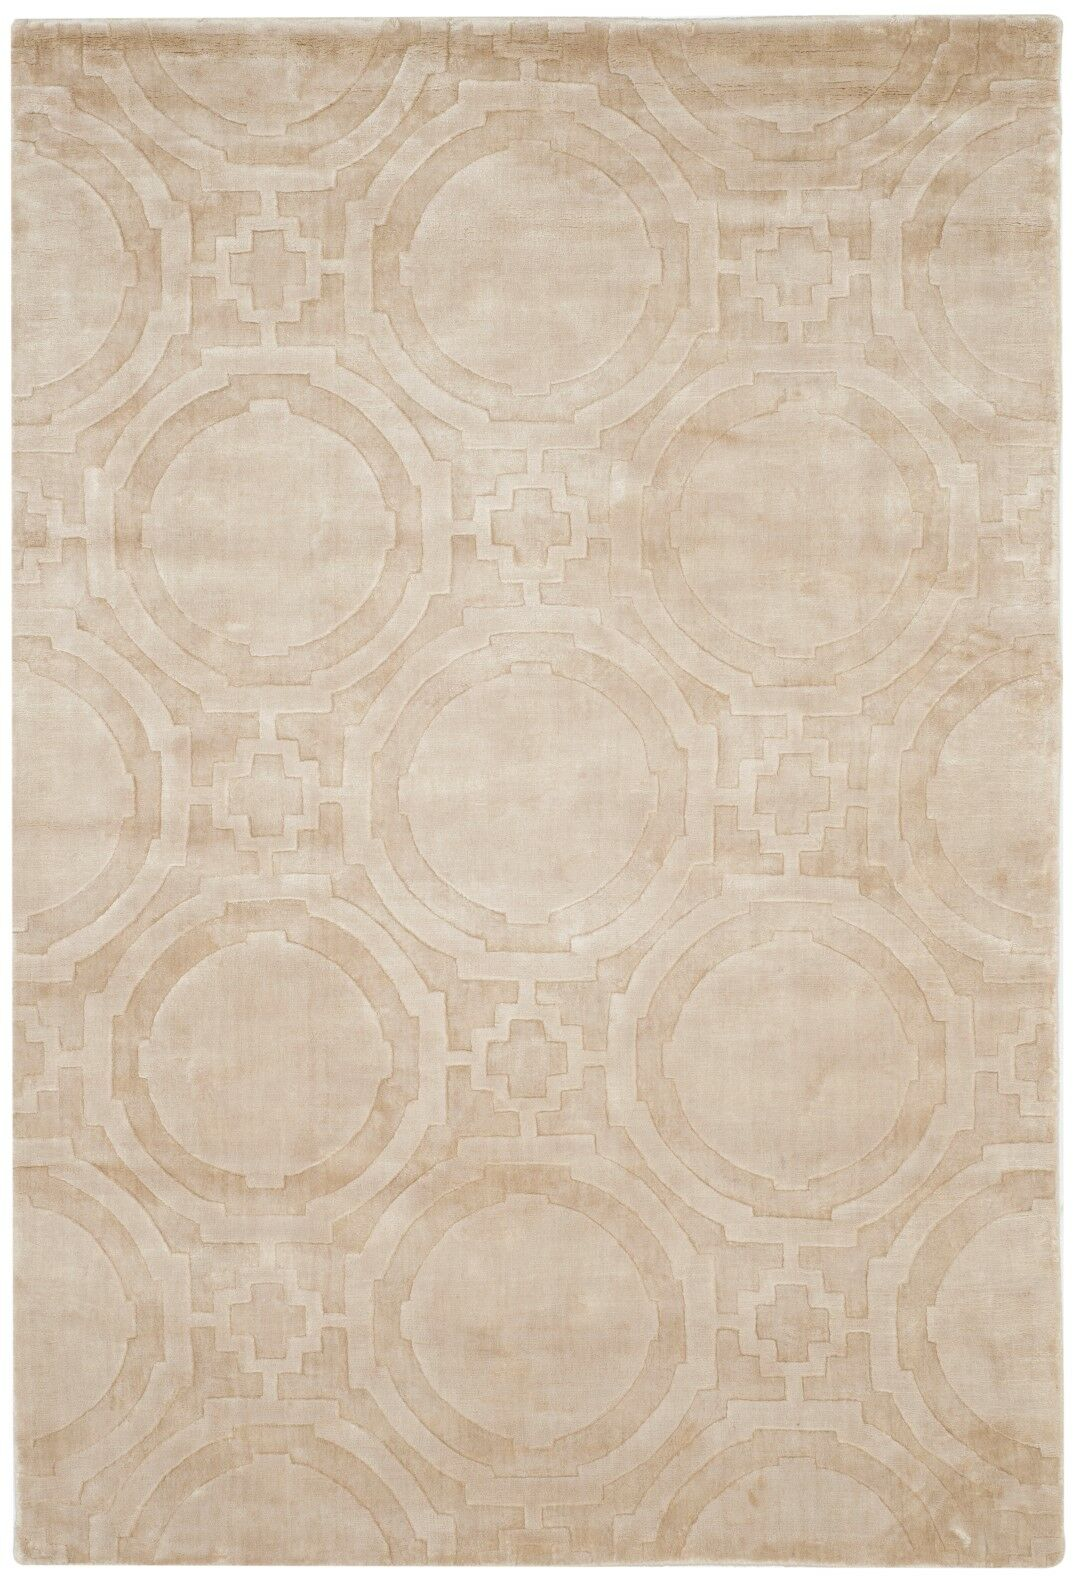 Wald Beige Area Rug Rug Size: Rectangle 8' x 10'